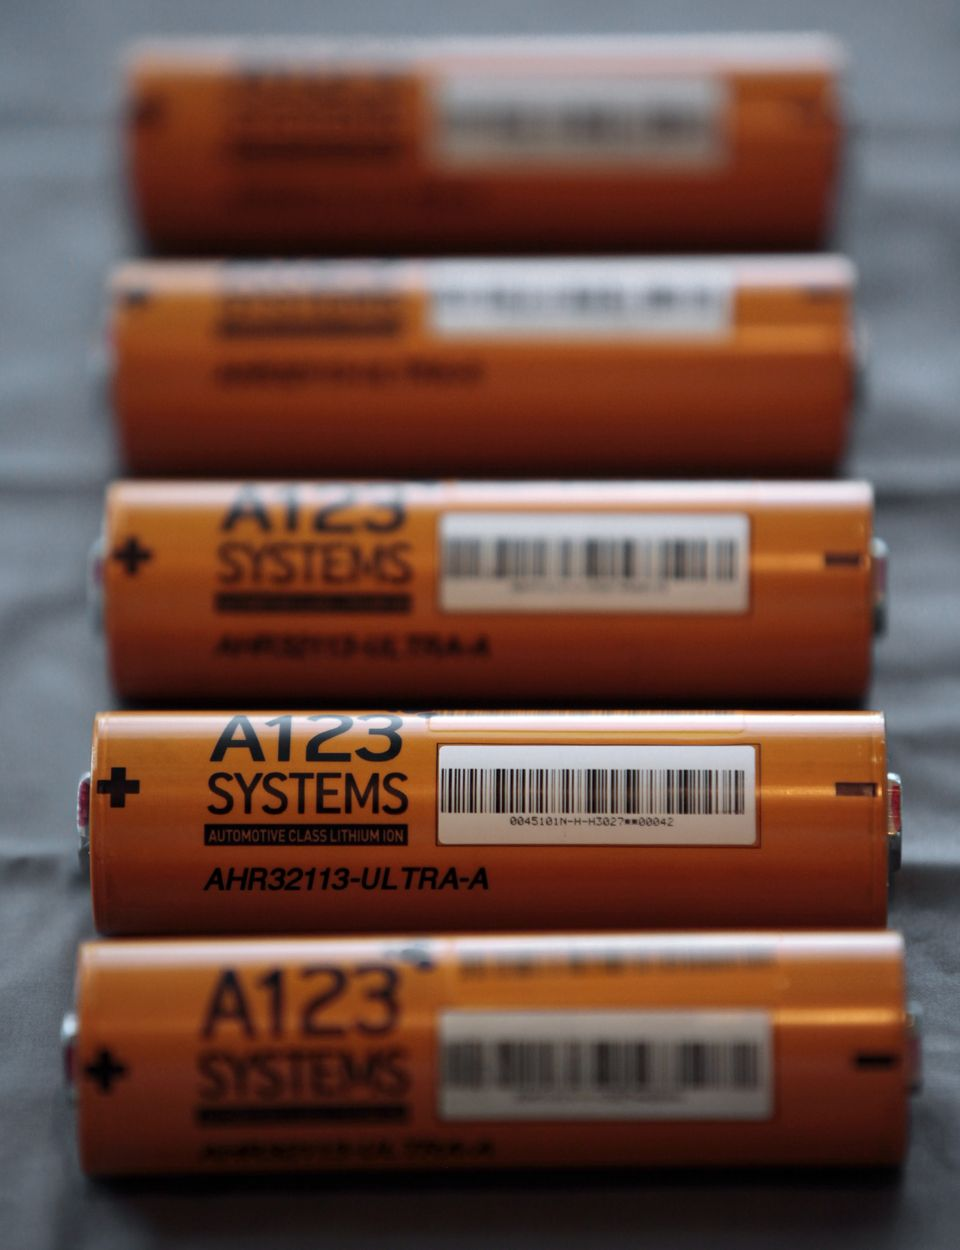 A123 Systems has filled for Chapter 11 bankruptcy